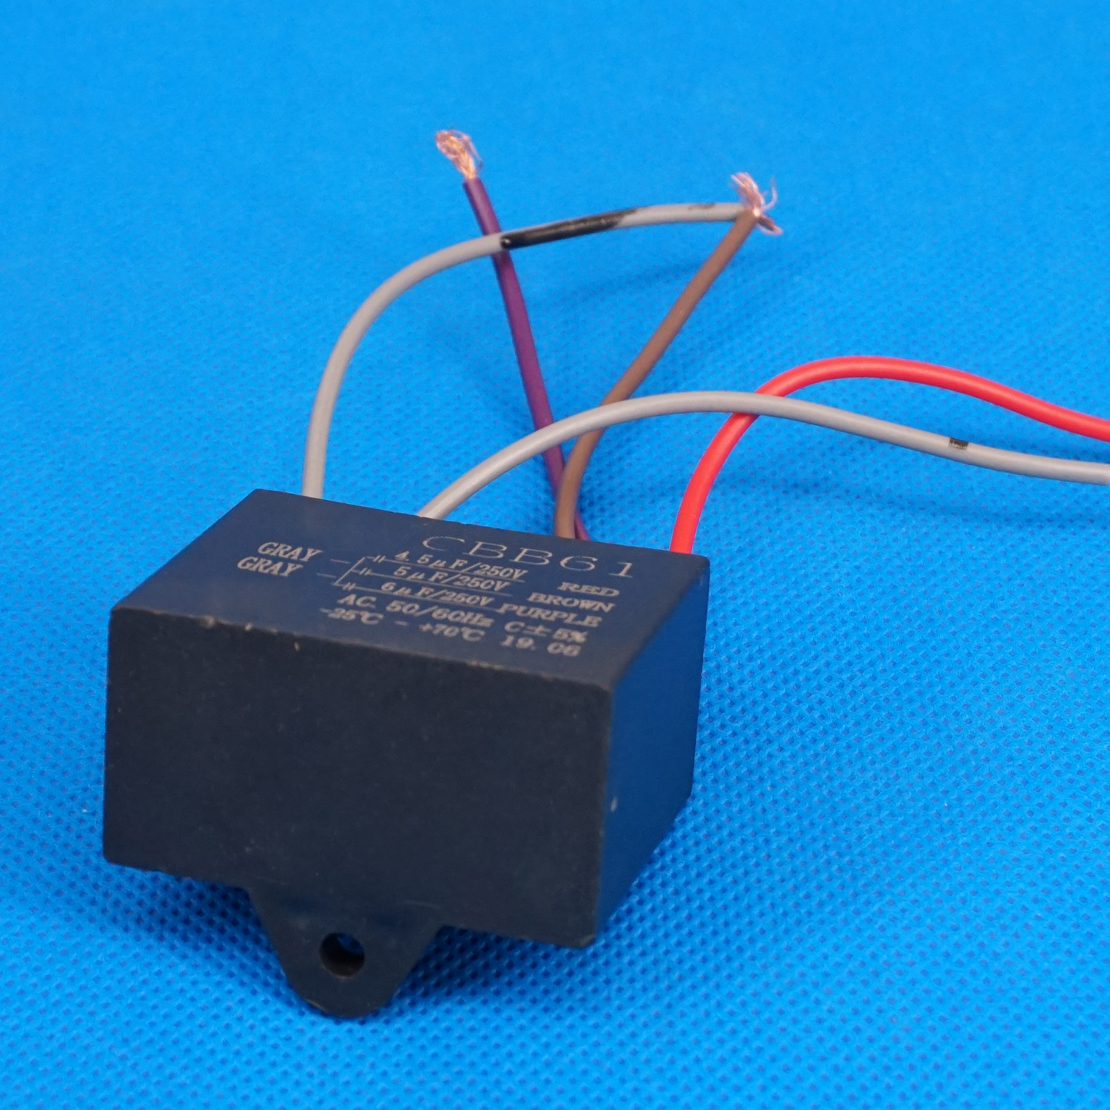 45uf 5uf 6uf 4 Wire Ac 250v Electric Fan Capacitor Replacement Type Control Wiring 6 Cbb61 Capacitors The Start And Stop Mechanisms Speeds On Many Different Types Of Ceiling Fans Motors Using These